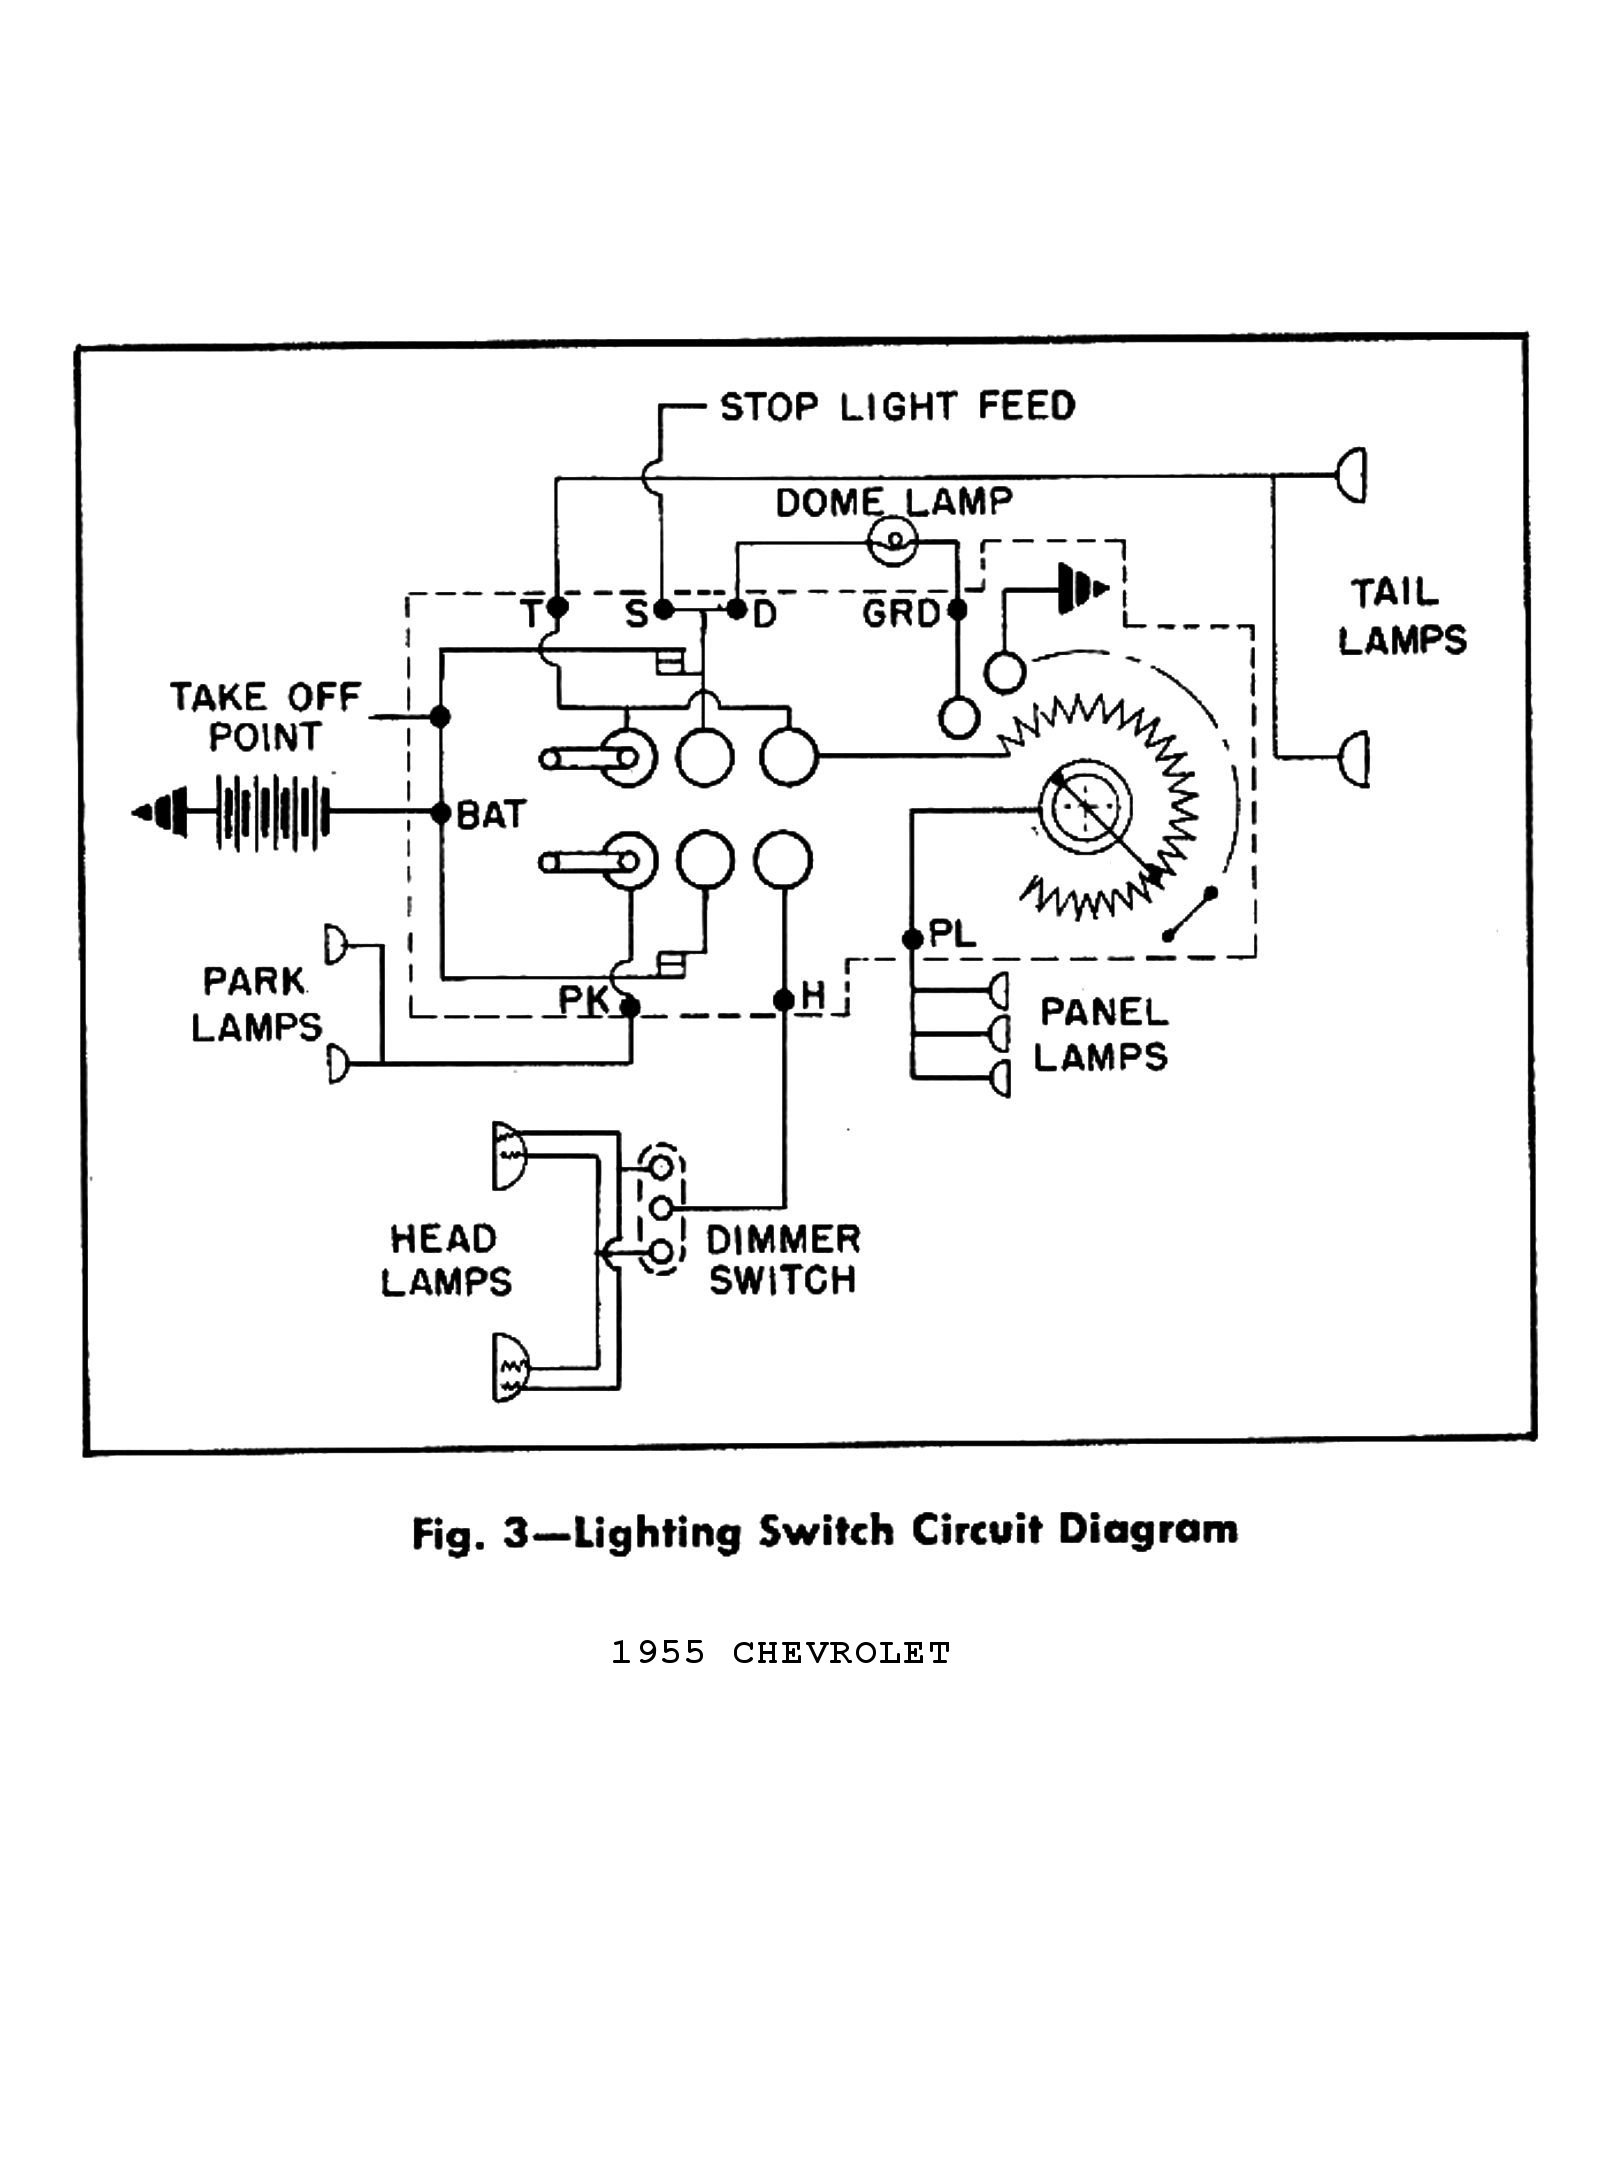 2017 silverado wiring diagram Download-1955 Truck Wiring Diagrams · 1955 Passenger Car Wiring 2 · 1955 Lighting Switch Circuit 3-c